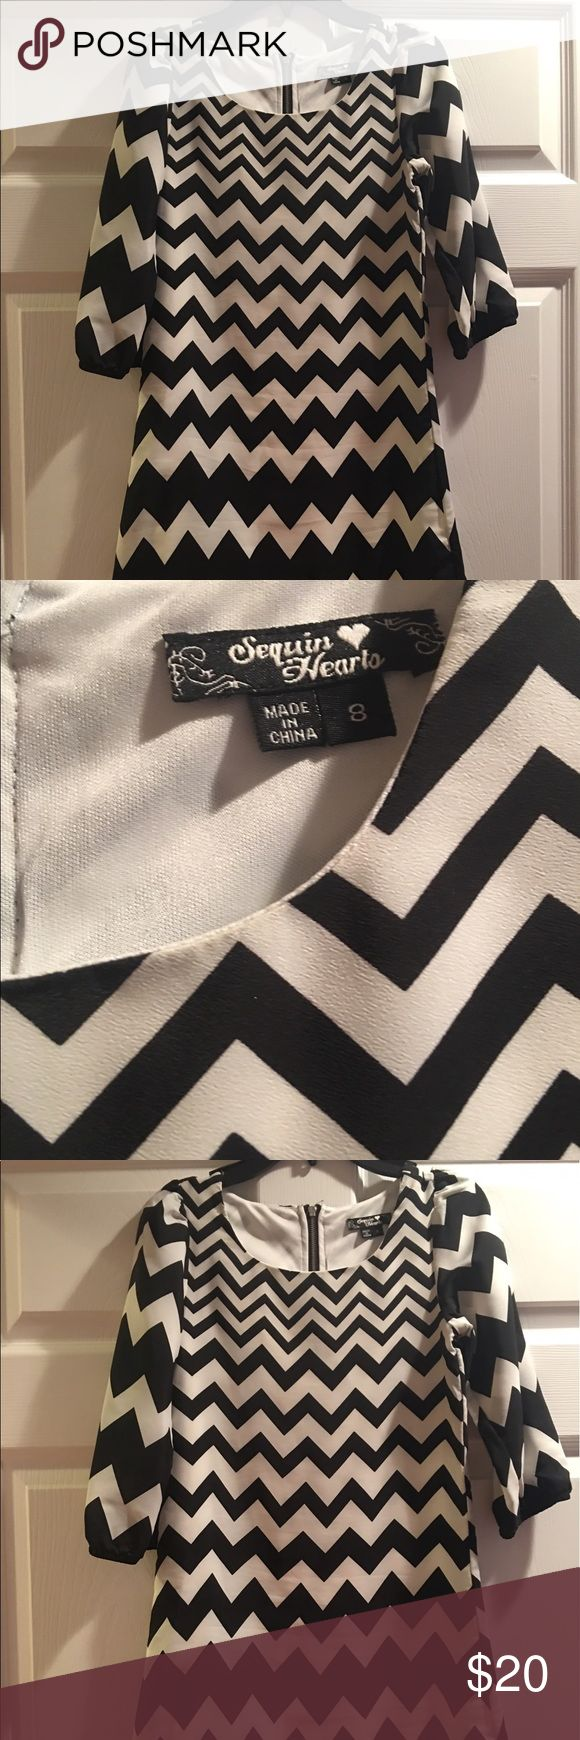 Chevron black and white girls dress size 8 Worn once.  Sequin Hearts girls chevron black and white dress.  Size 8 girls.  Cute dress Sequin Hearts Dresses Casual